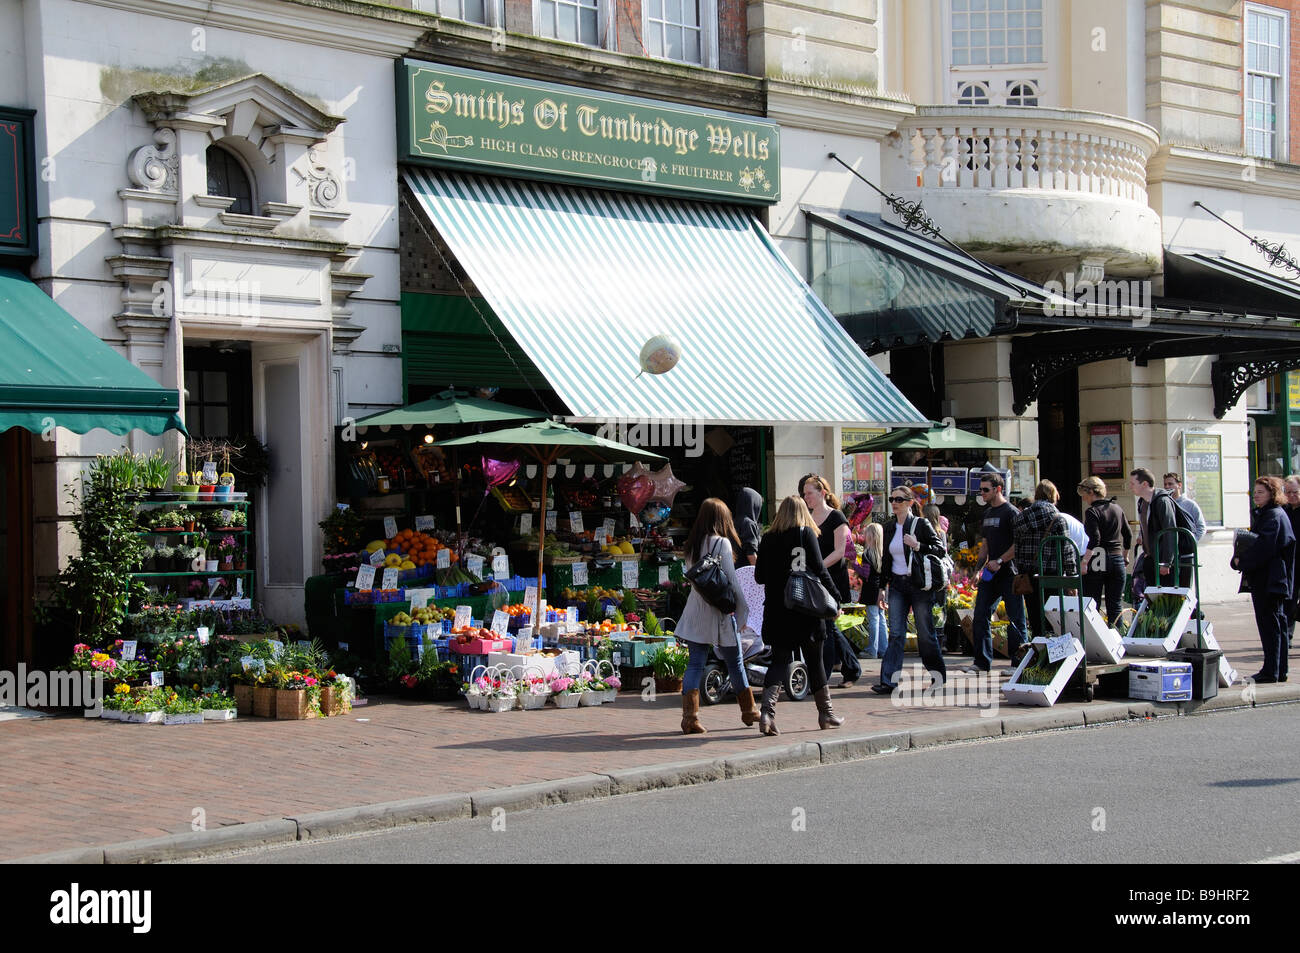 Mount Pleasant Road Royal Tunbridge Wells Kent England shoppers outside a greengrocers store - Stock Image